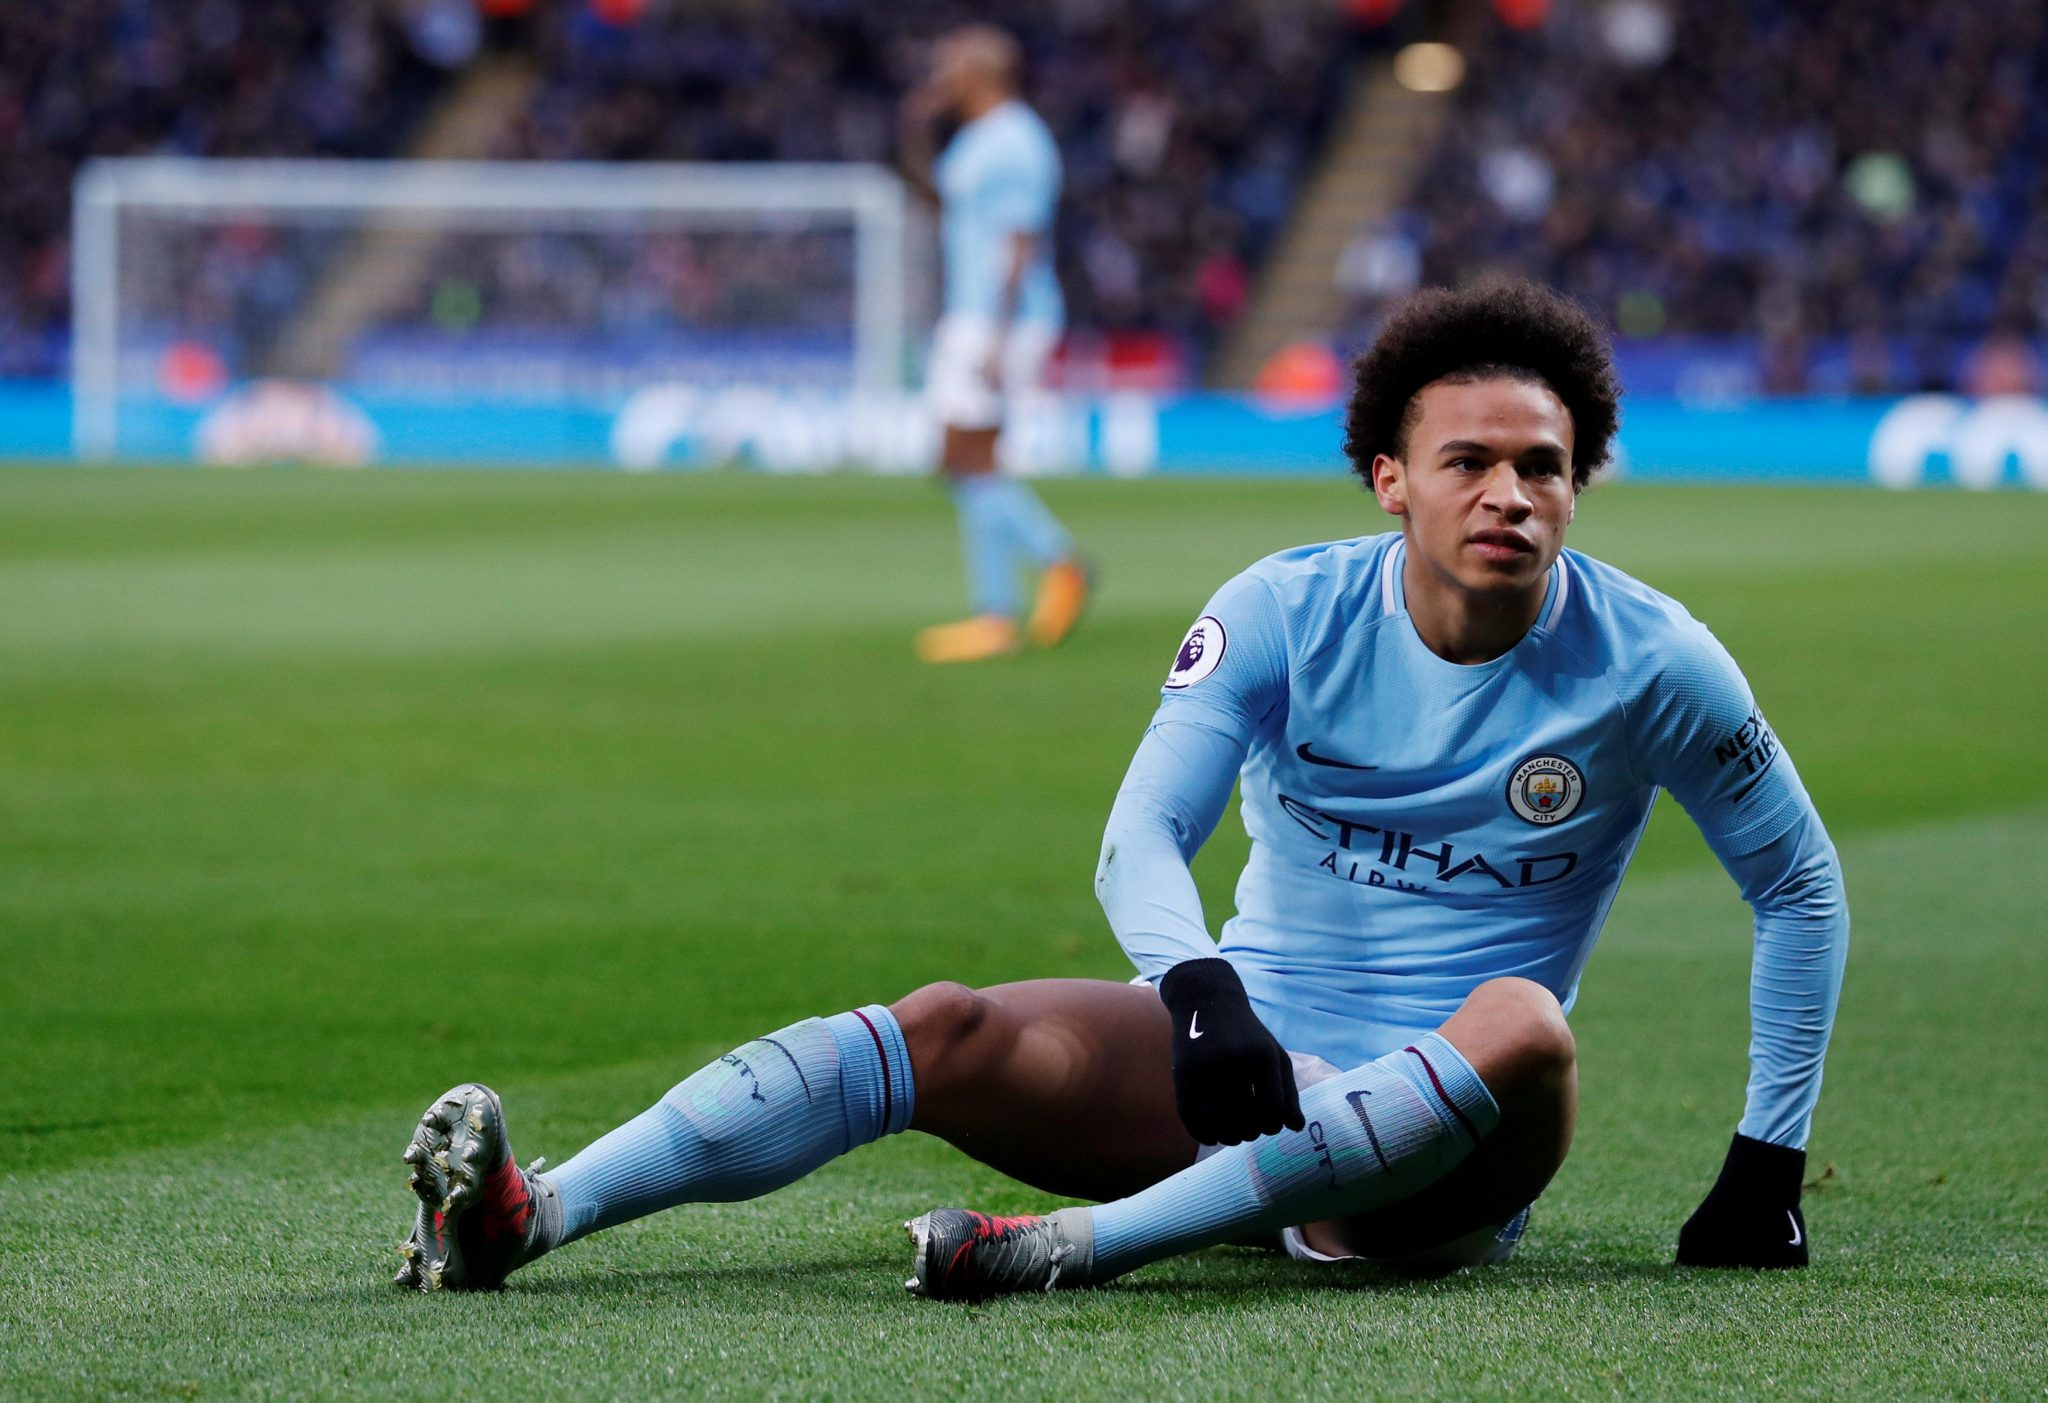 Leroy Sané: From Exciting Talent To Established Star